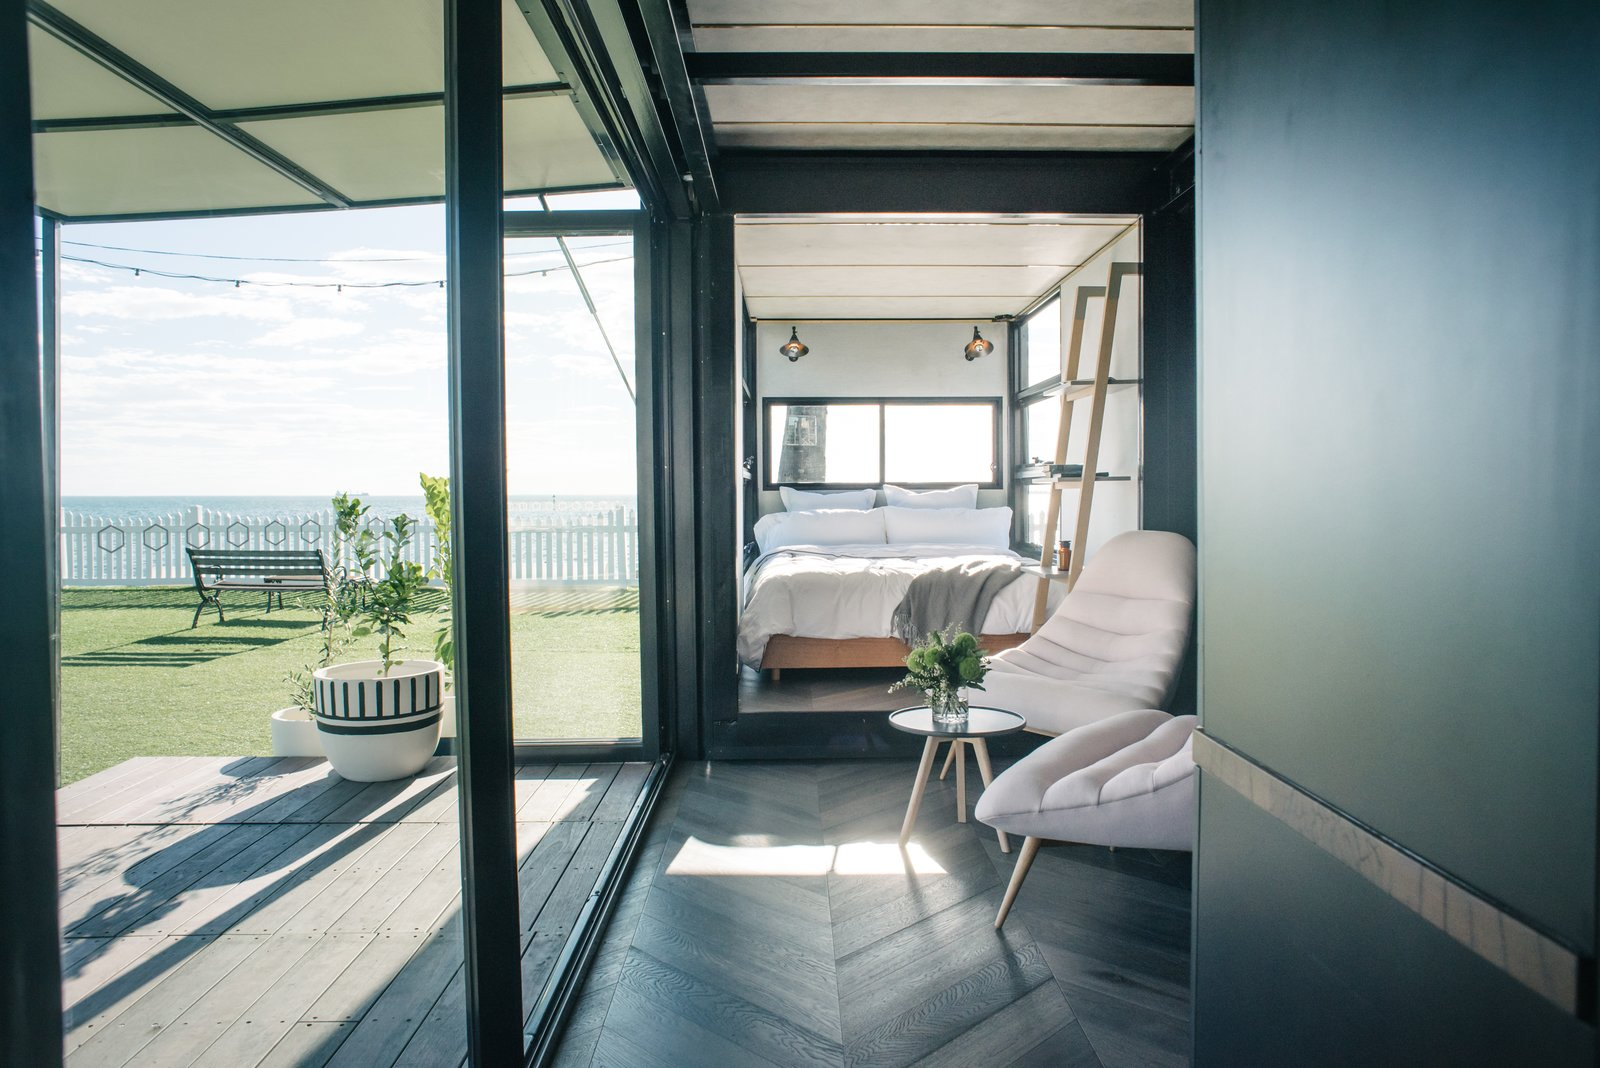 An Australian Firm Makes Portable Hotel Rooms Out of Shipping Containers - Photo 2 of 9